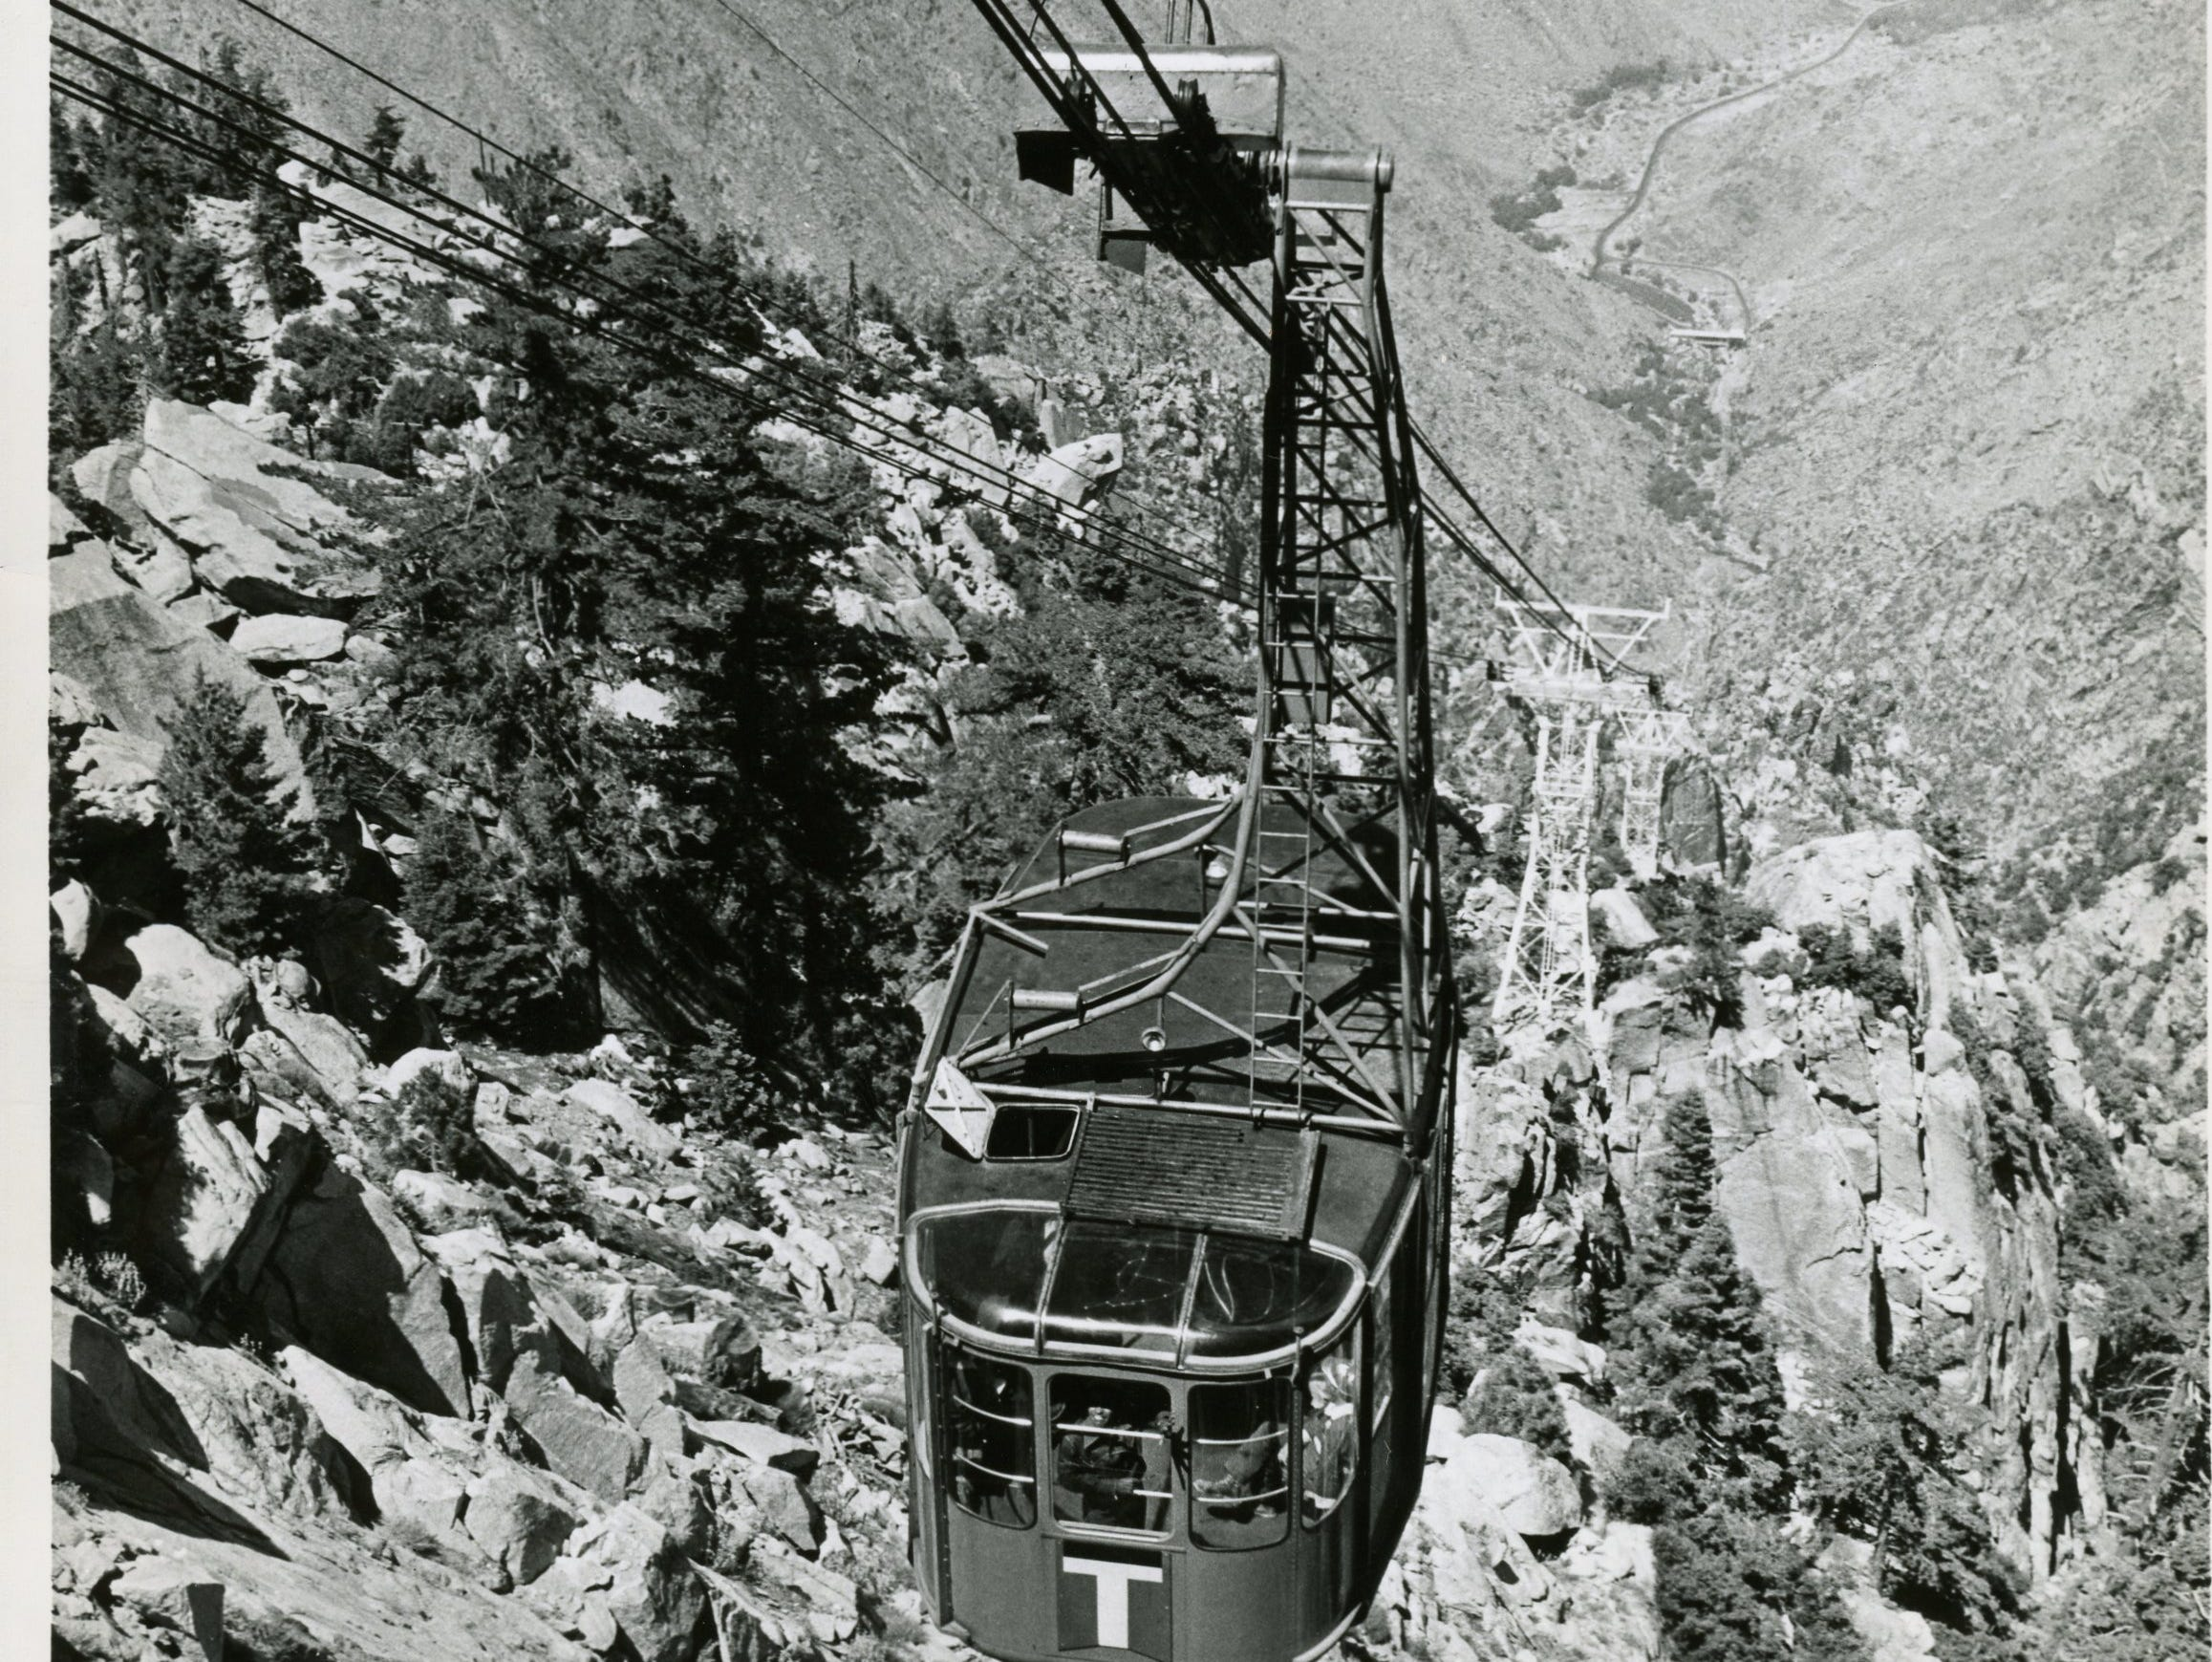 An early tram car makes its way up the mountain in this undated Palm Springs Aerial Tram photo.